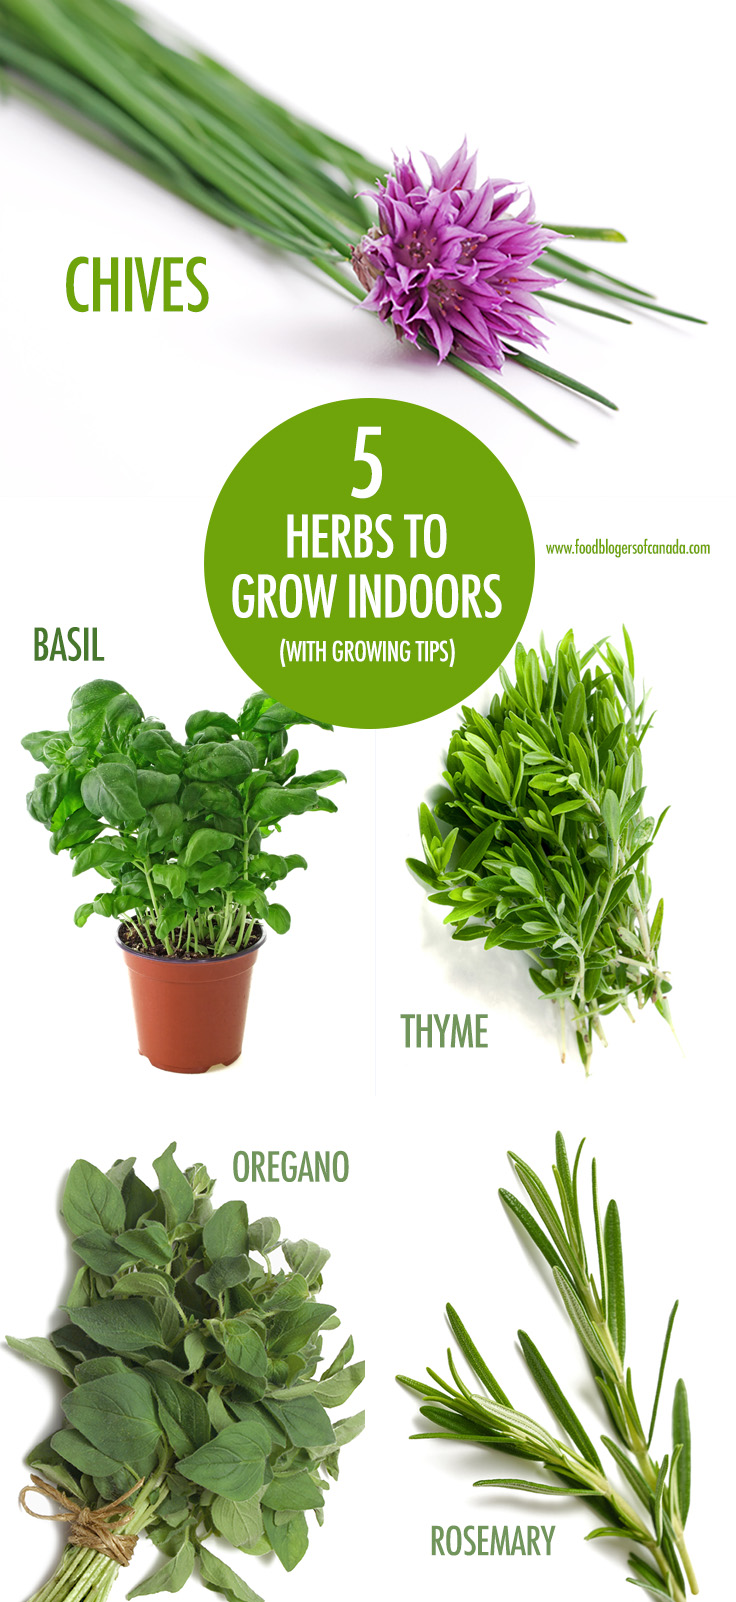 Food bloggers of canada our top five herbs to grow indoors - Best herbs to grow indoors ...